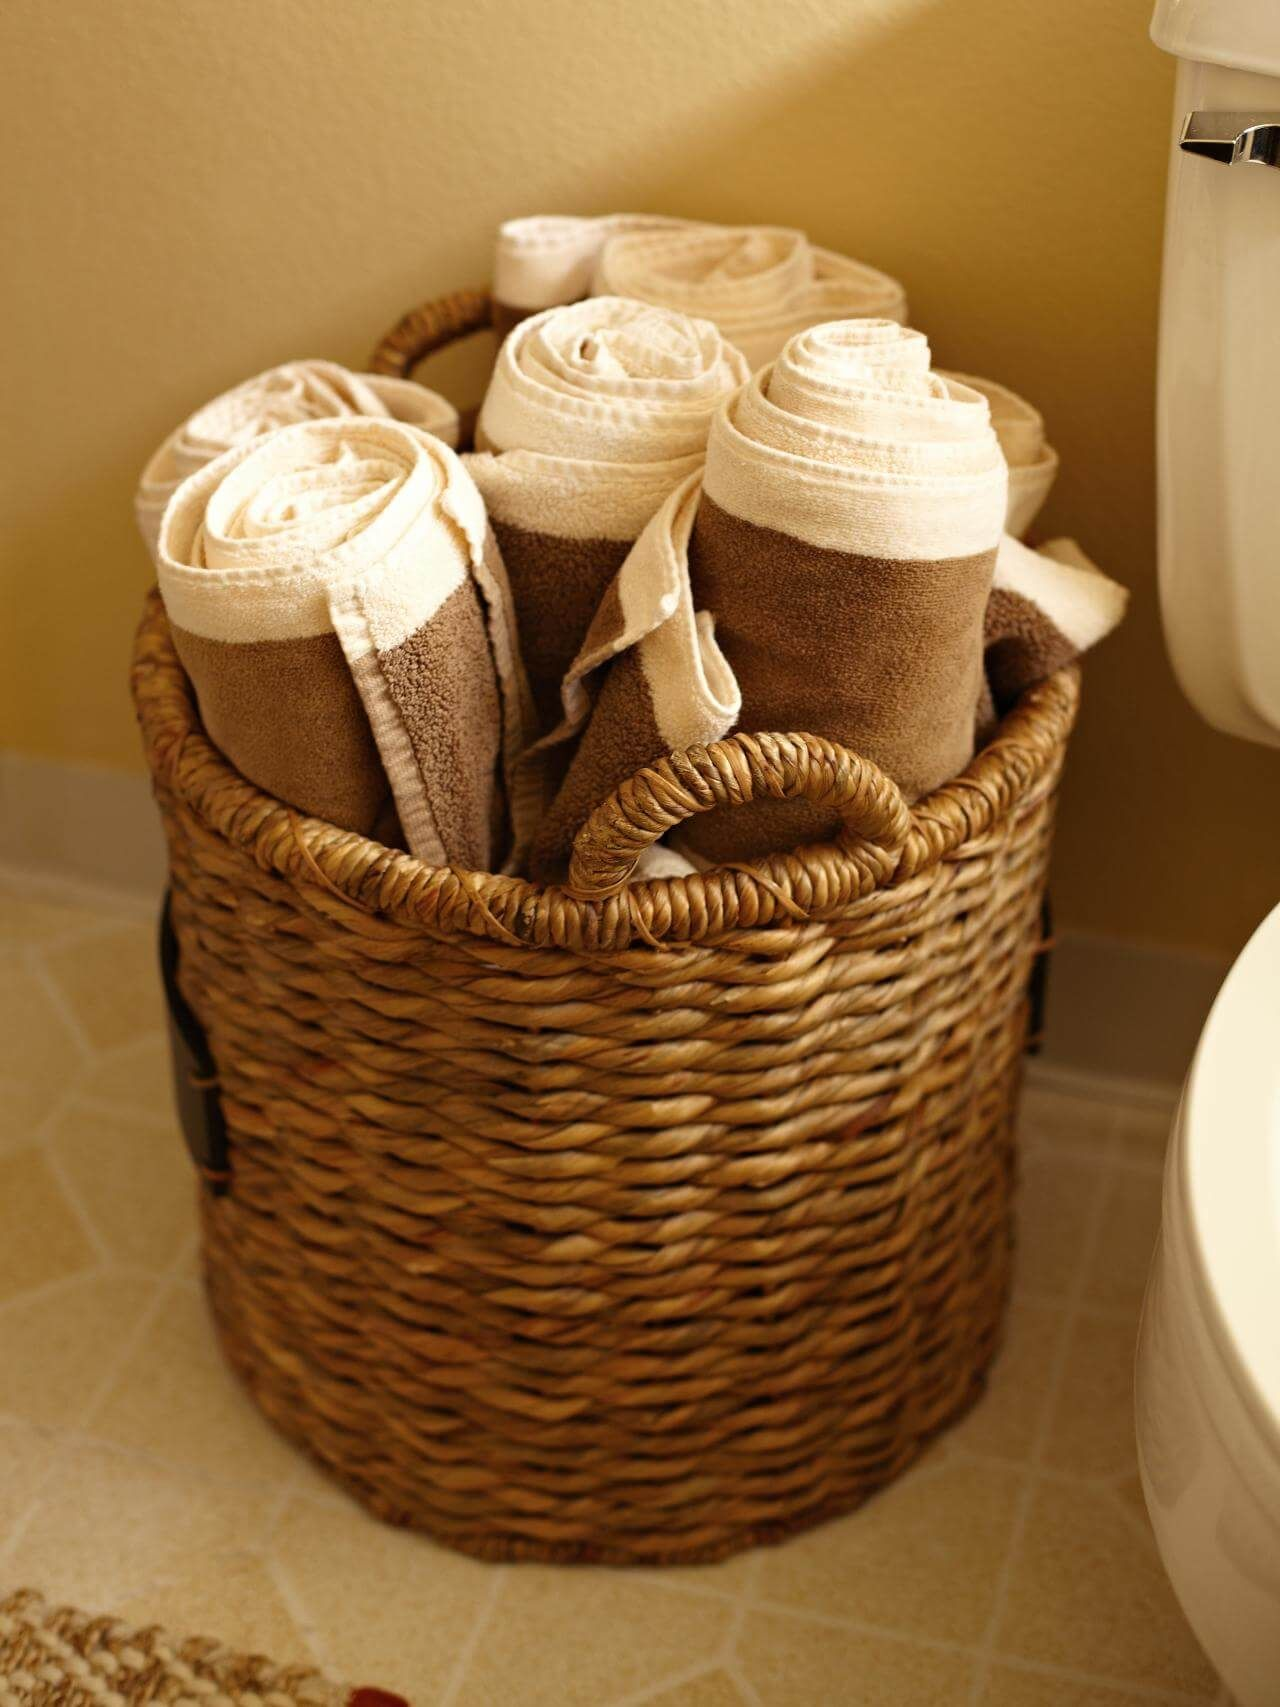 34 space-saving towel storage ideas for your bathroom | towels